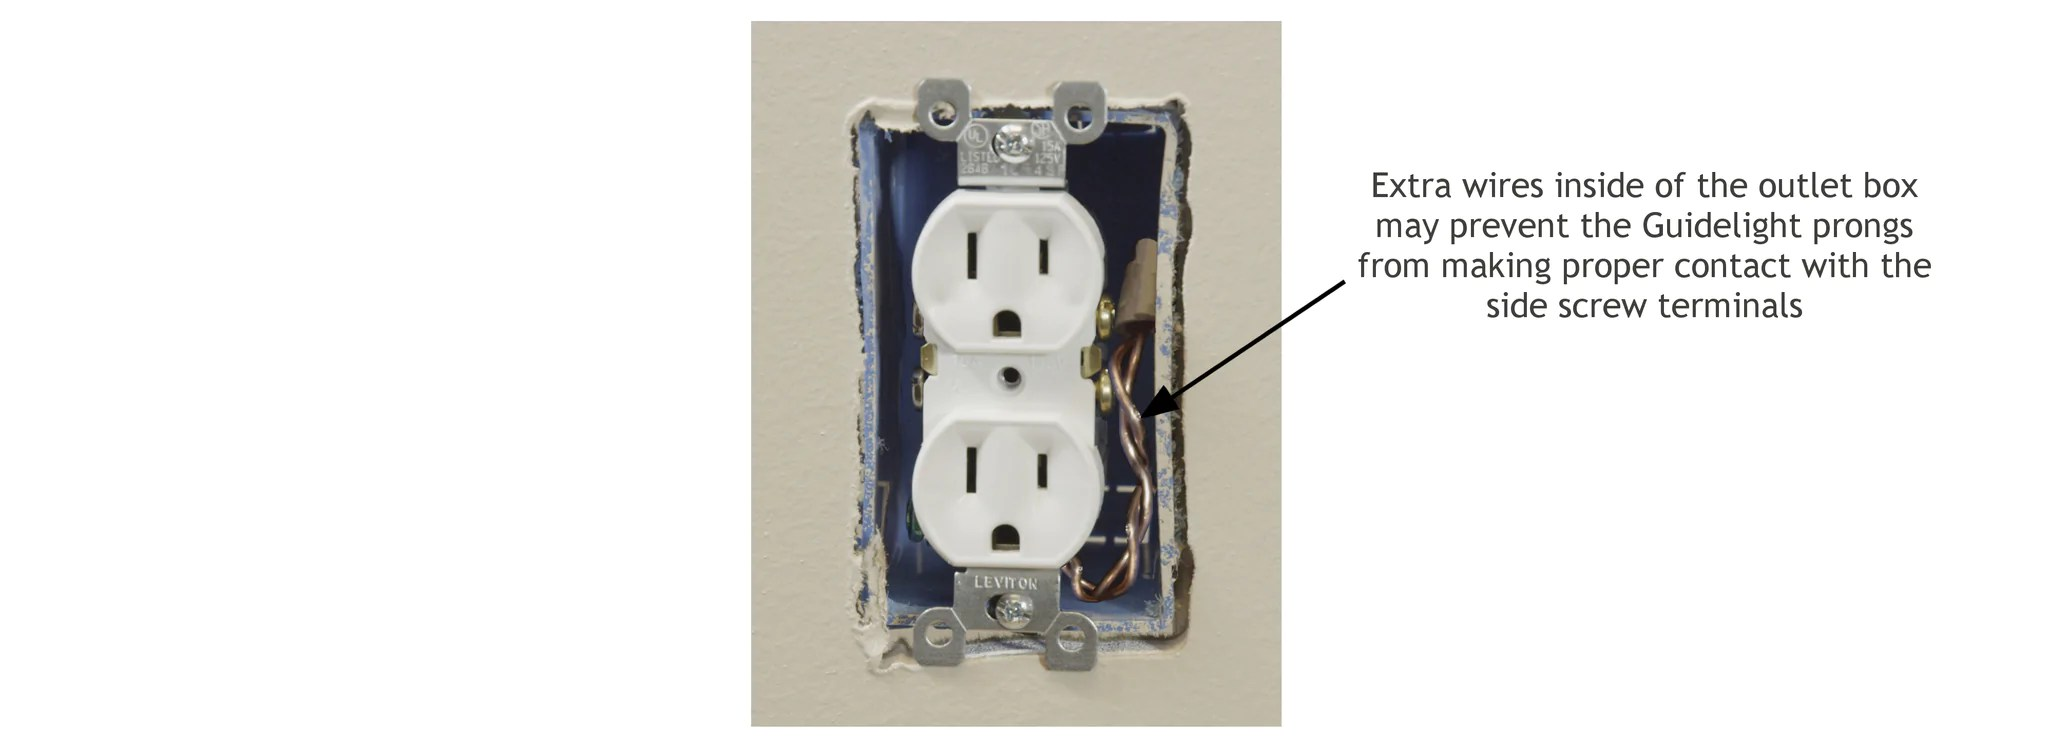 medium resolution of the wires will need to be moved away from the screw terminals in order for the guidelight to work if you are unsure of how to do this properly or are